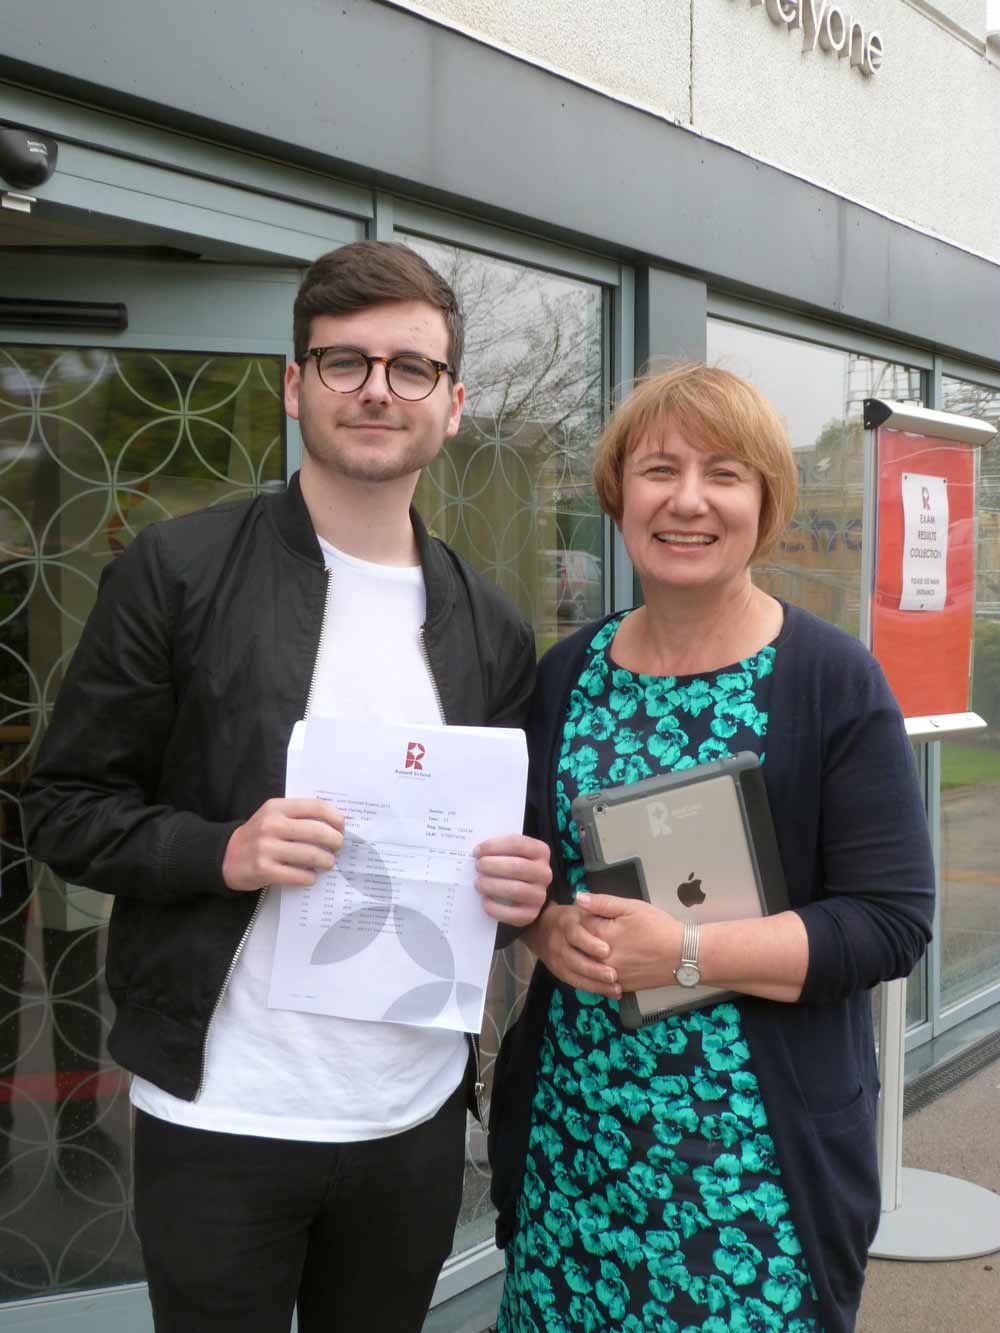 Lewis Parker achieved two A*s and a B in his A levels at Rossett School to earn his place at Bournemouth University studying Computer Animation